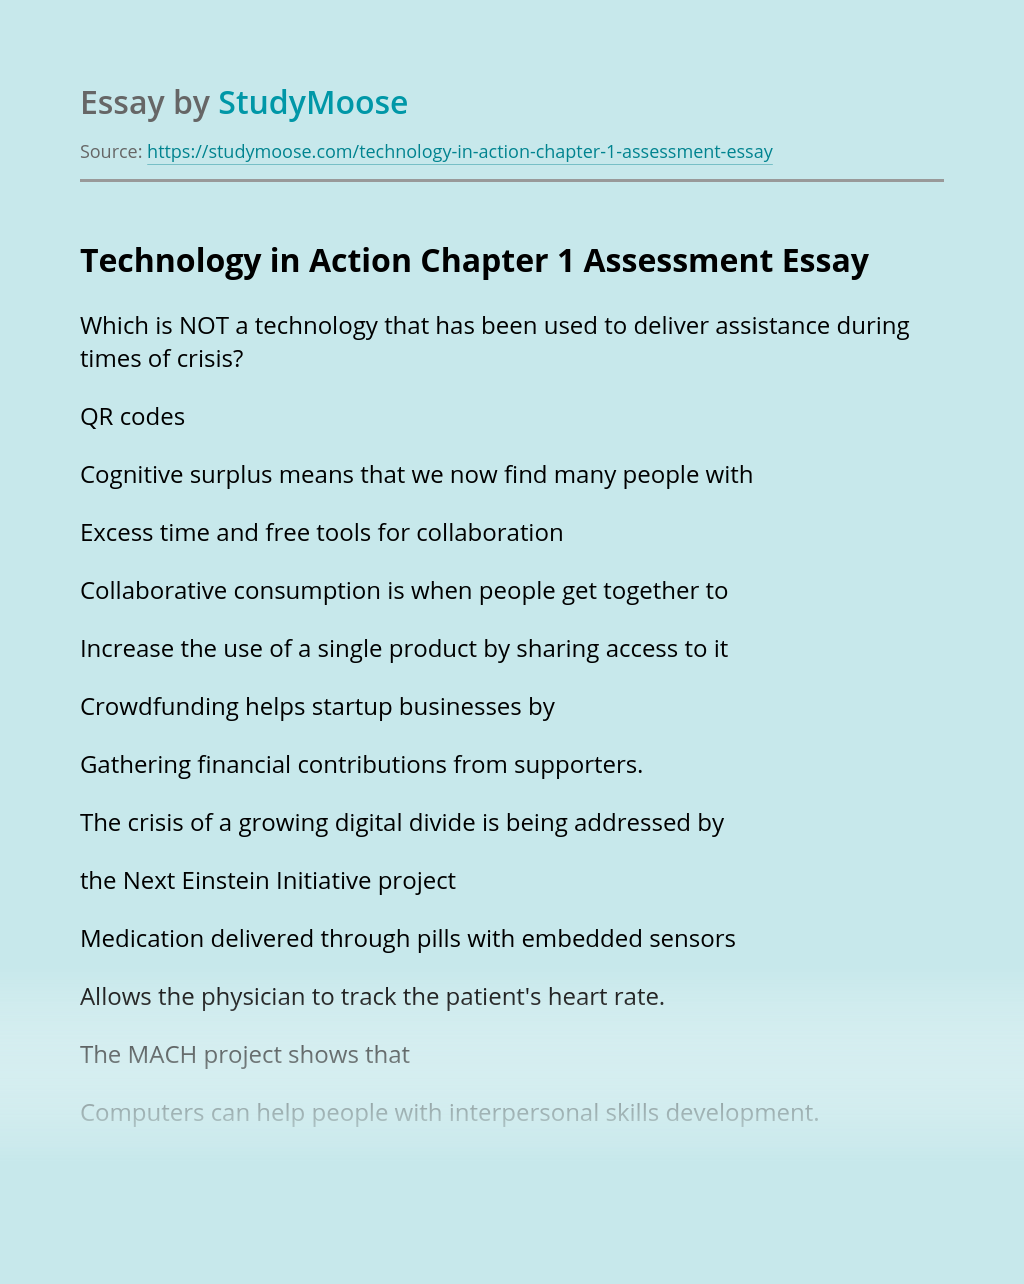 Technology in Action Chapter 1 Assessment